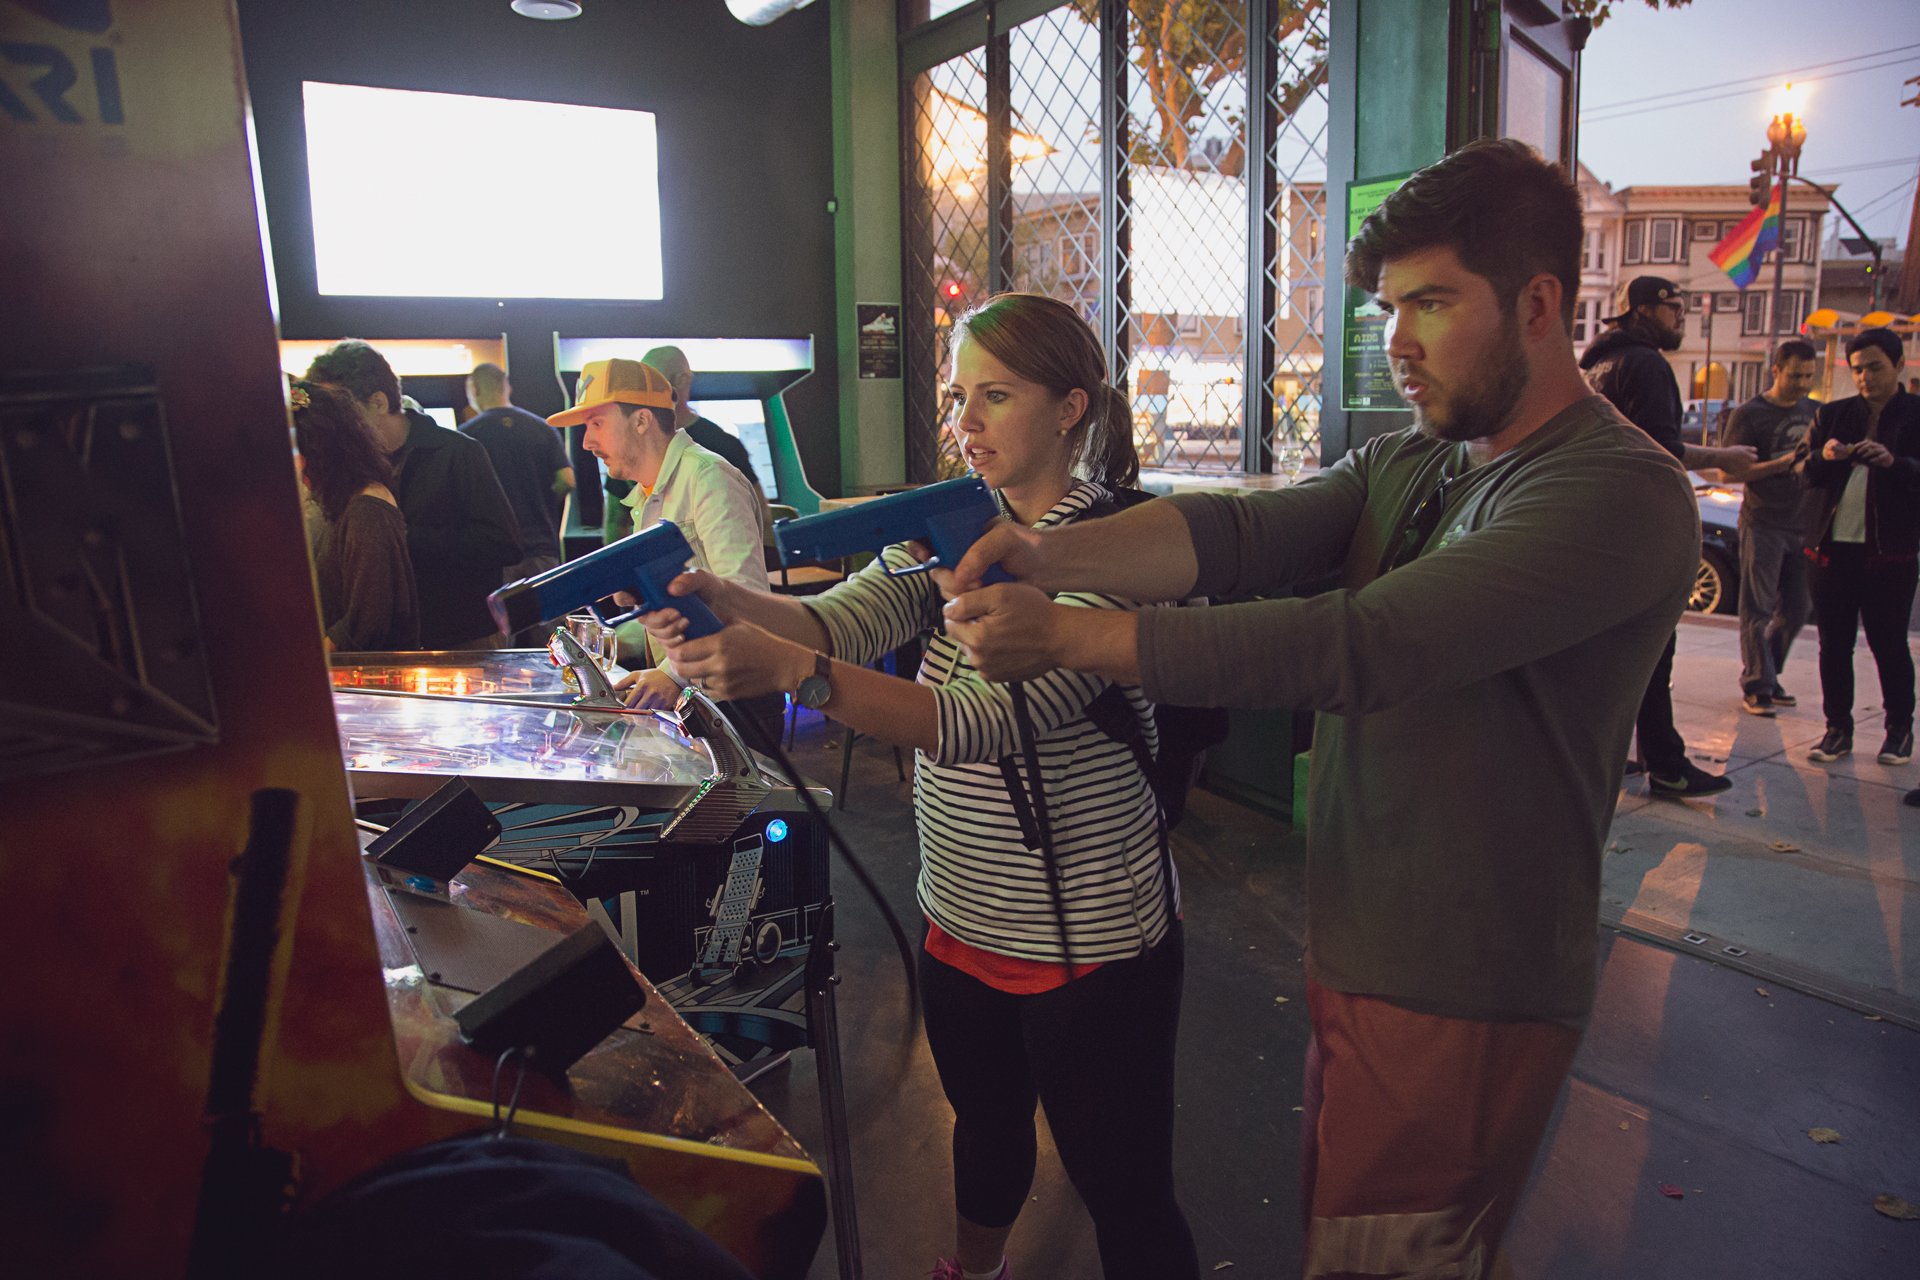 alison-and-chris-playing-video-games-castro-san-francisco-patrick-sanders.jpg